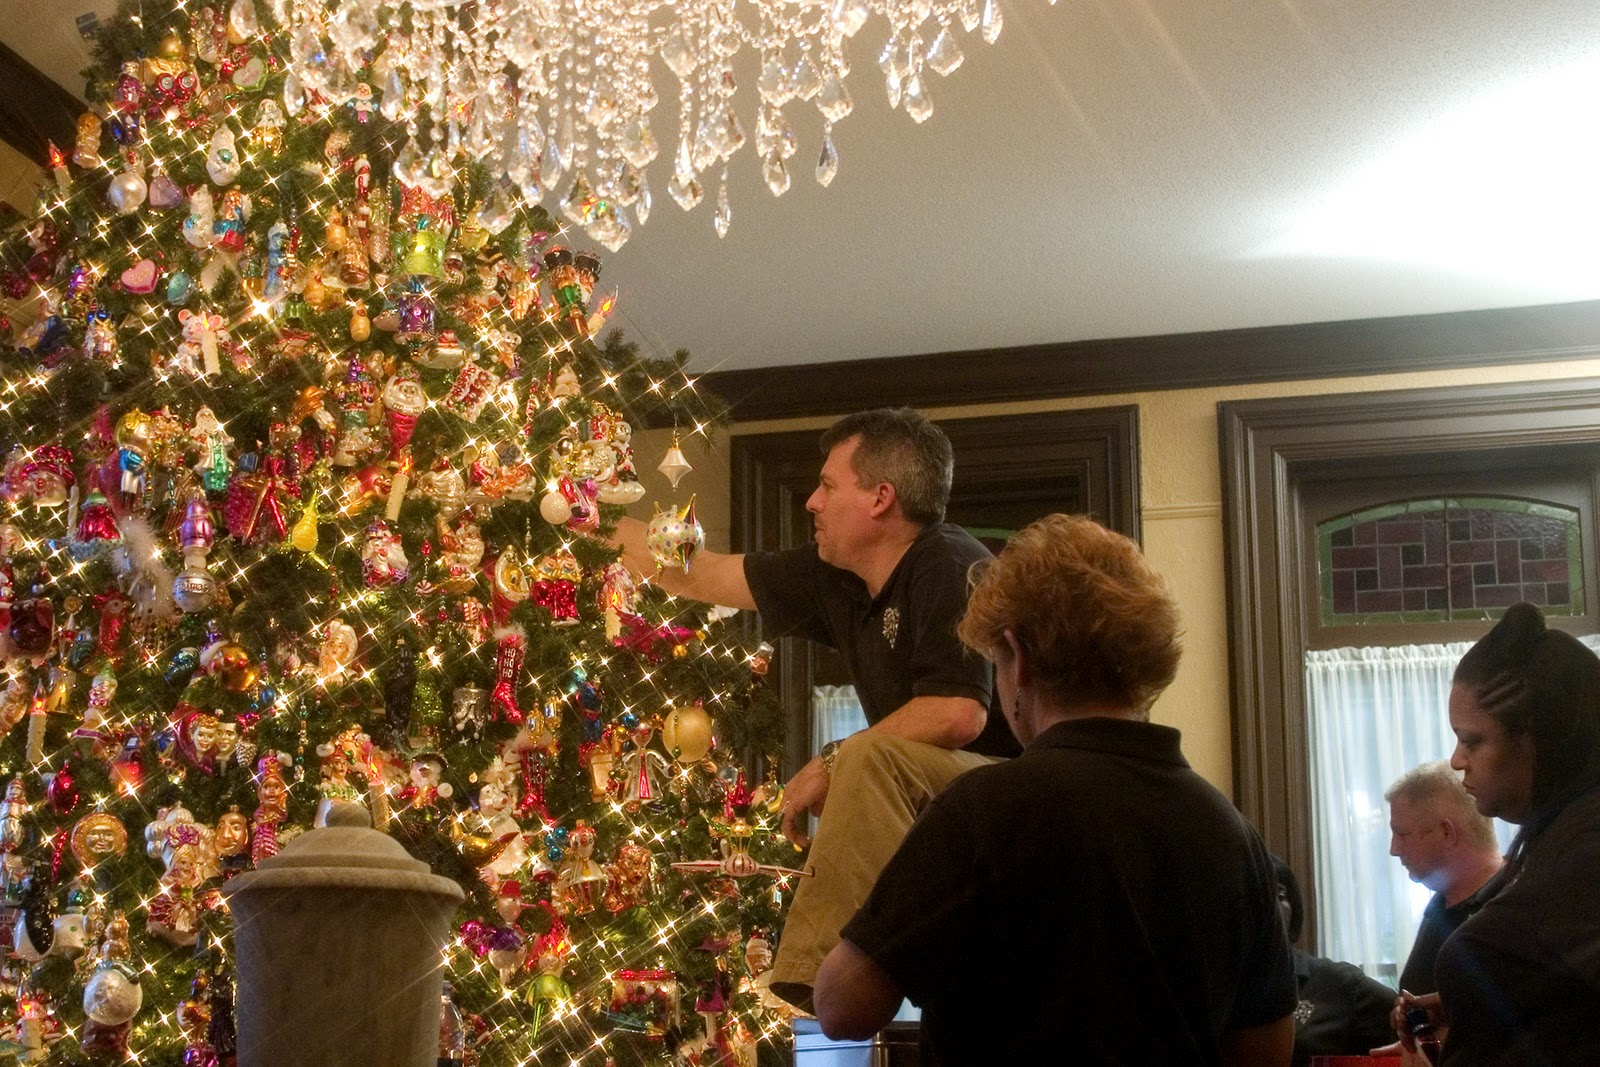 Golden Isles Travel News and Information: A Christmas Wonderland in ...